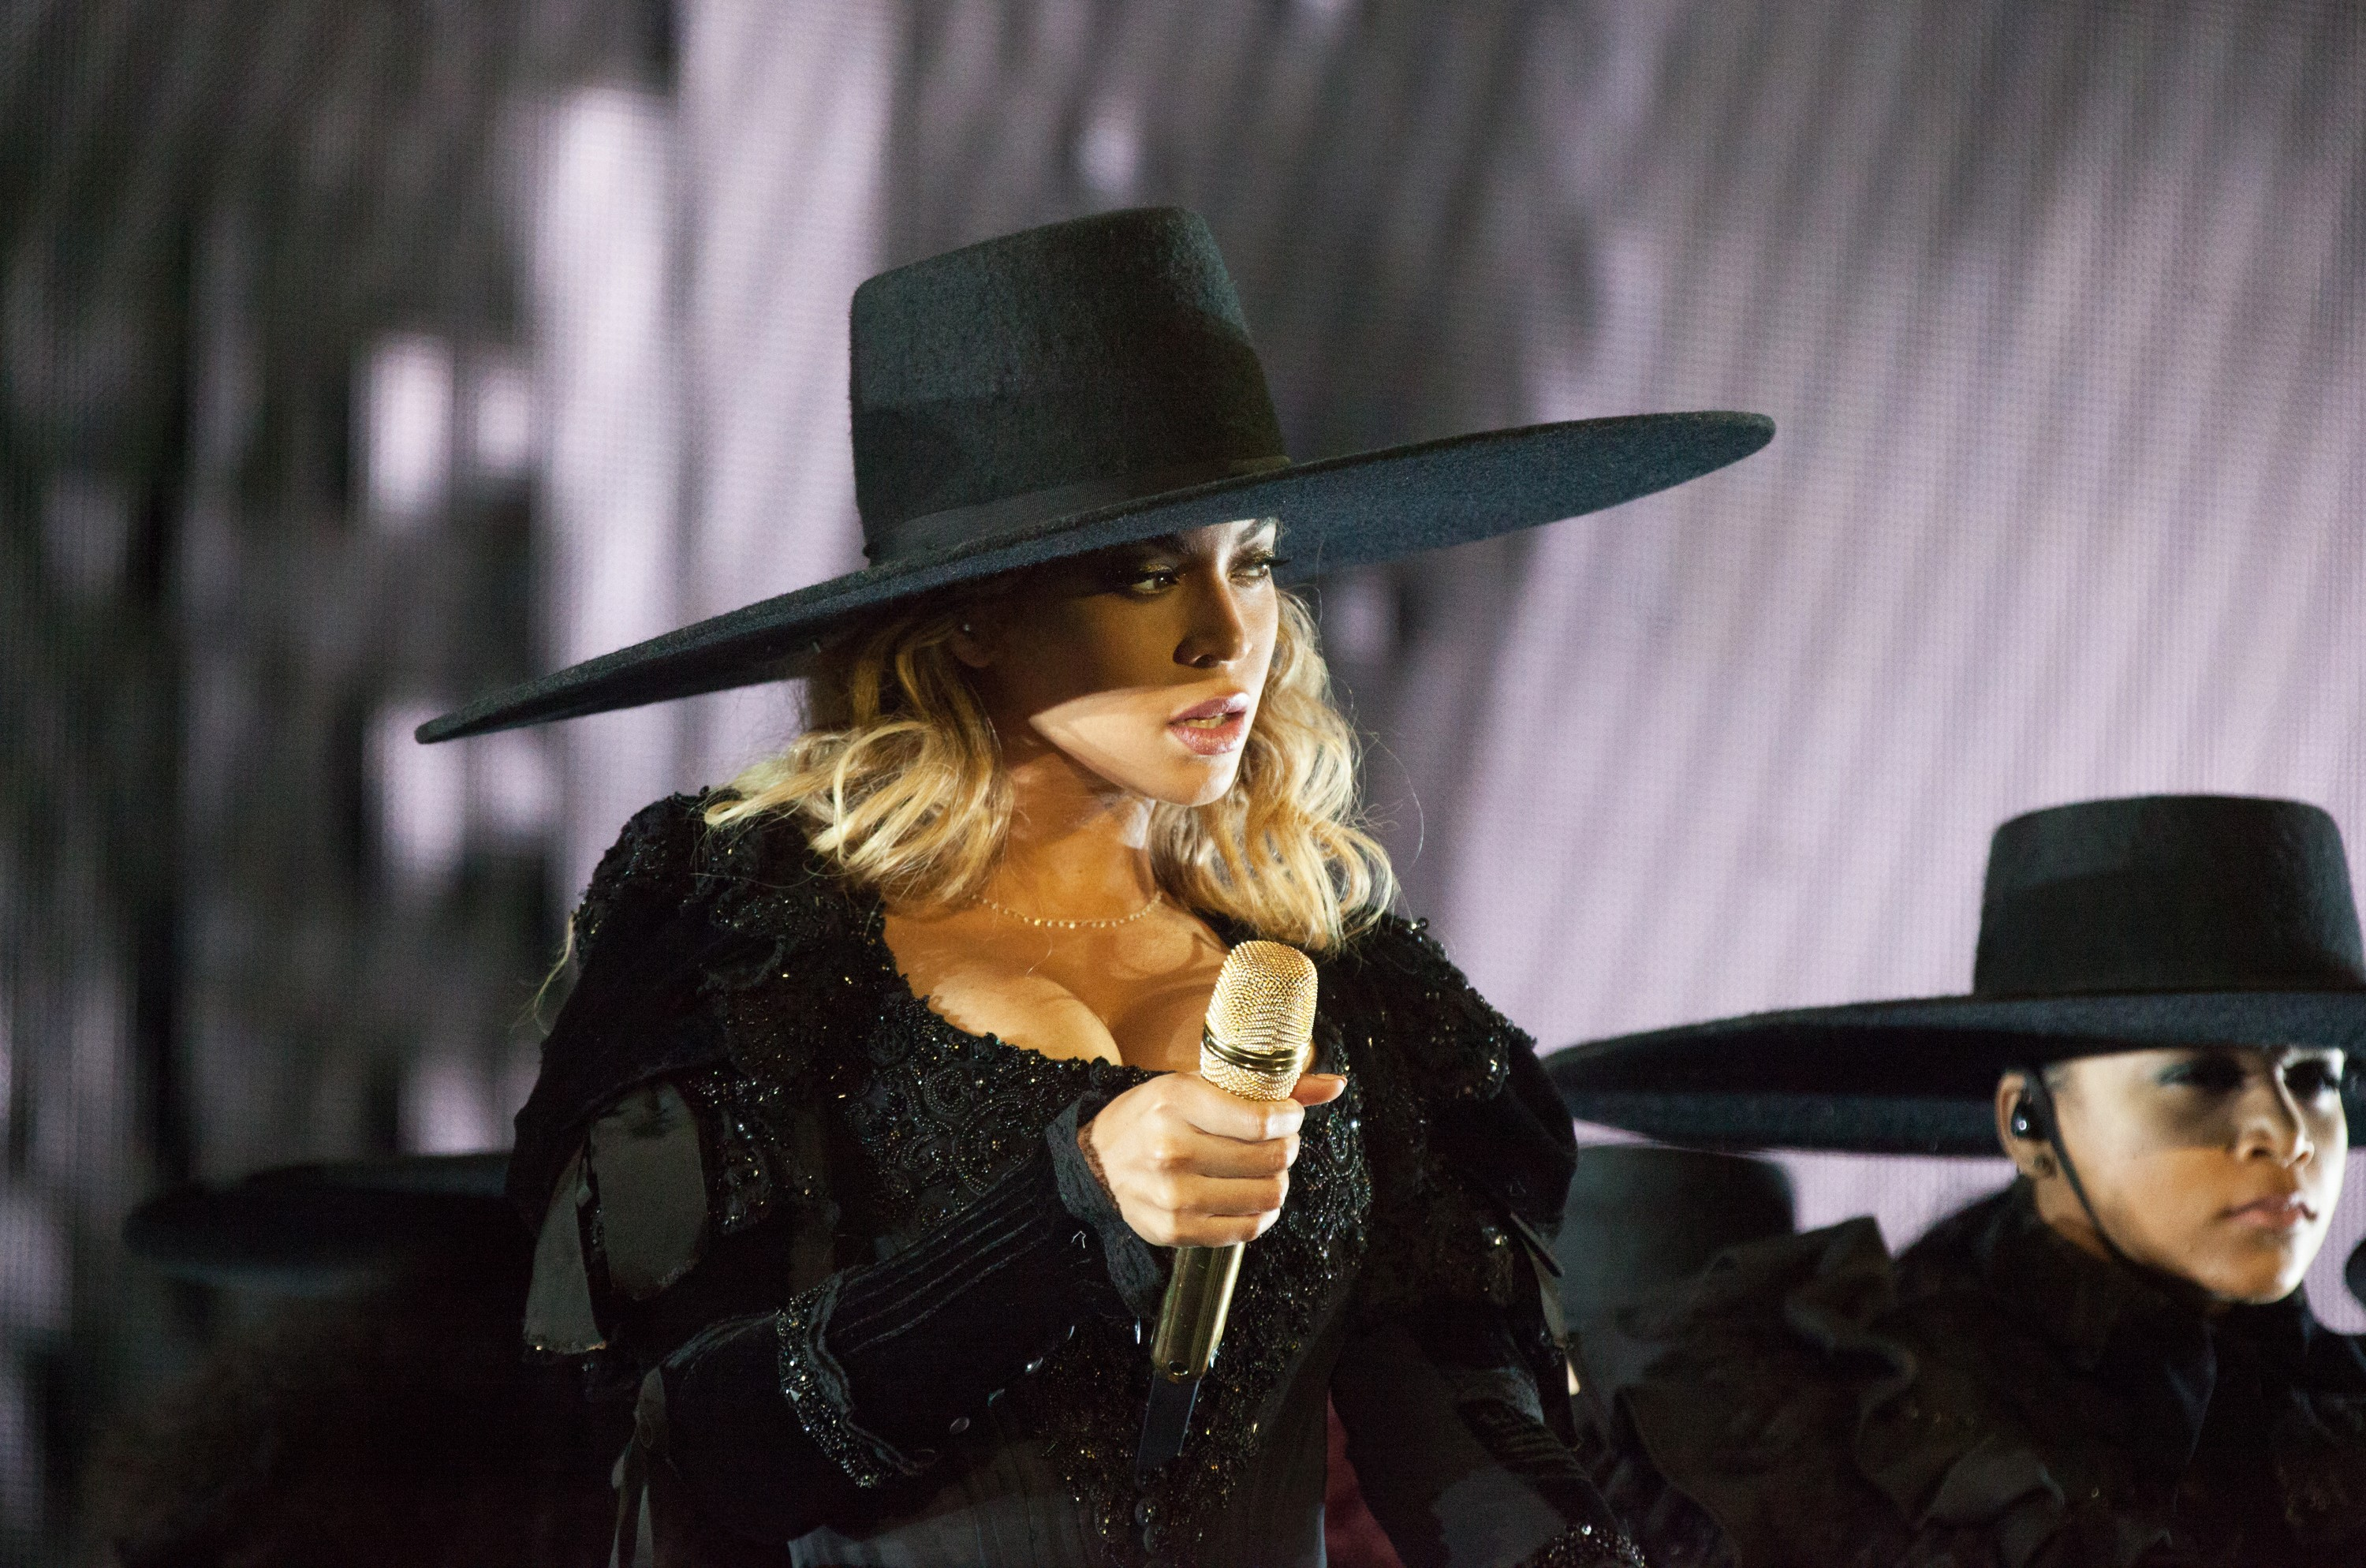 Beyonce performs during the Formation World Tour at Ford Field on Tuesday, June 14, 2016, in Detroit, Michigan